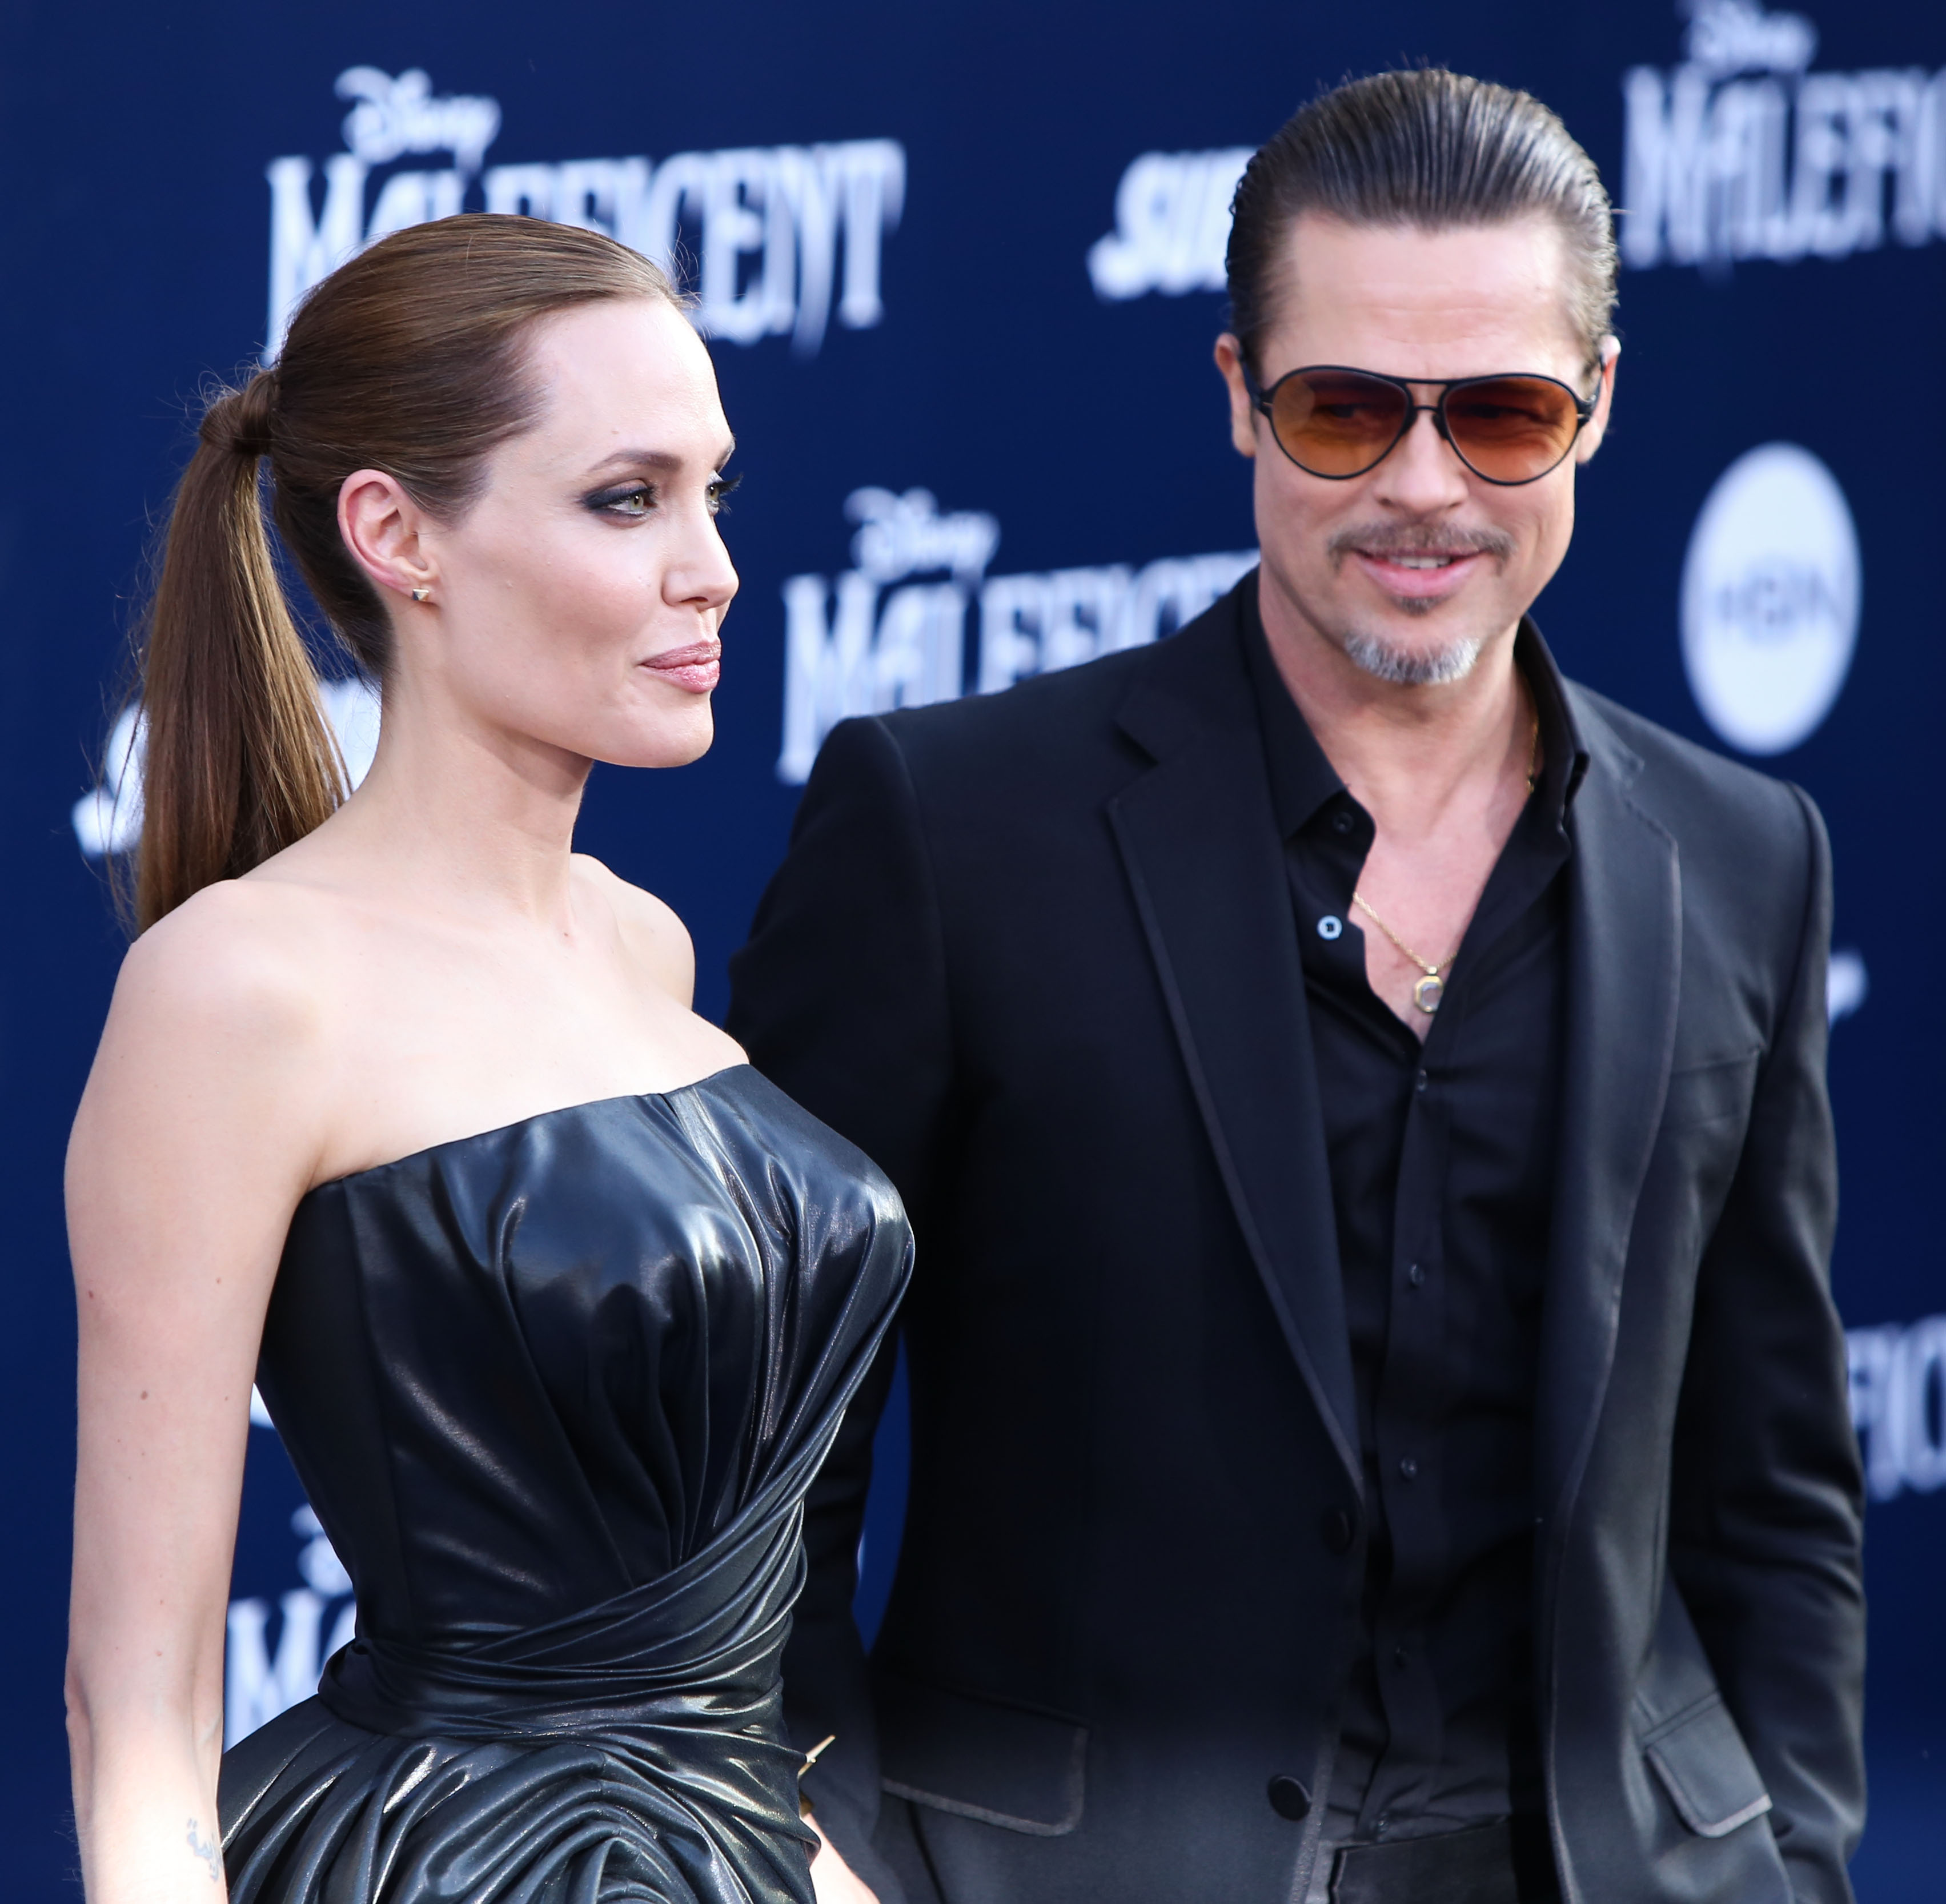 Actress Angelina Jolie and Actor Brad Pitt arrive at the World Premiere Of Disney's 'Maleficent' held at the El Capitan Theatre on May 28, 2014 in Hollywood, Los Angeles.